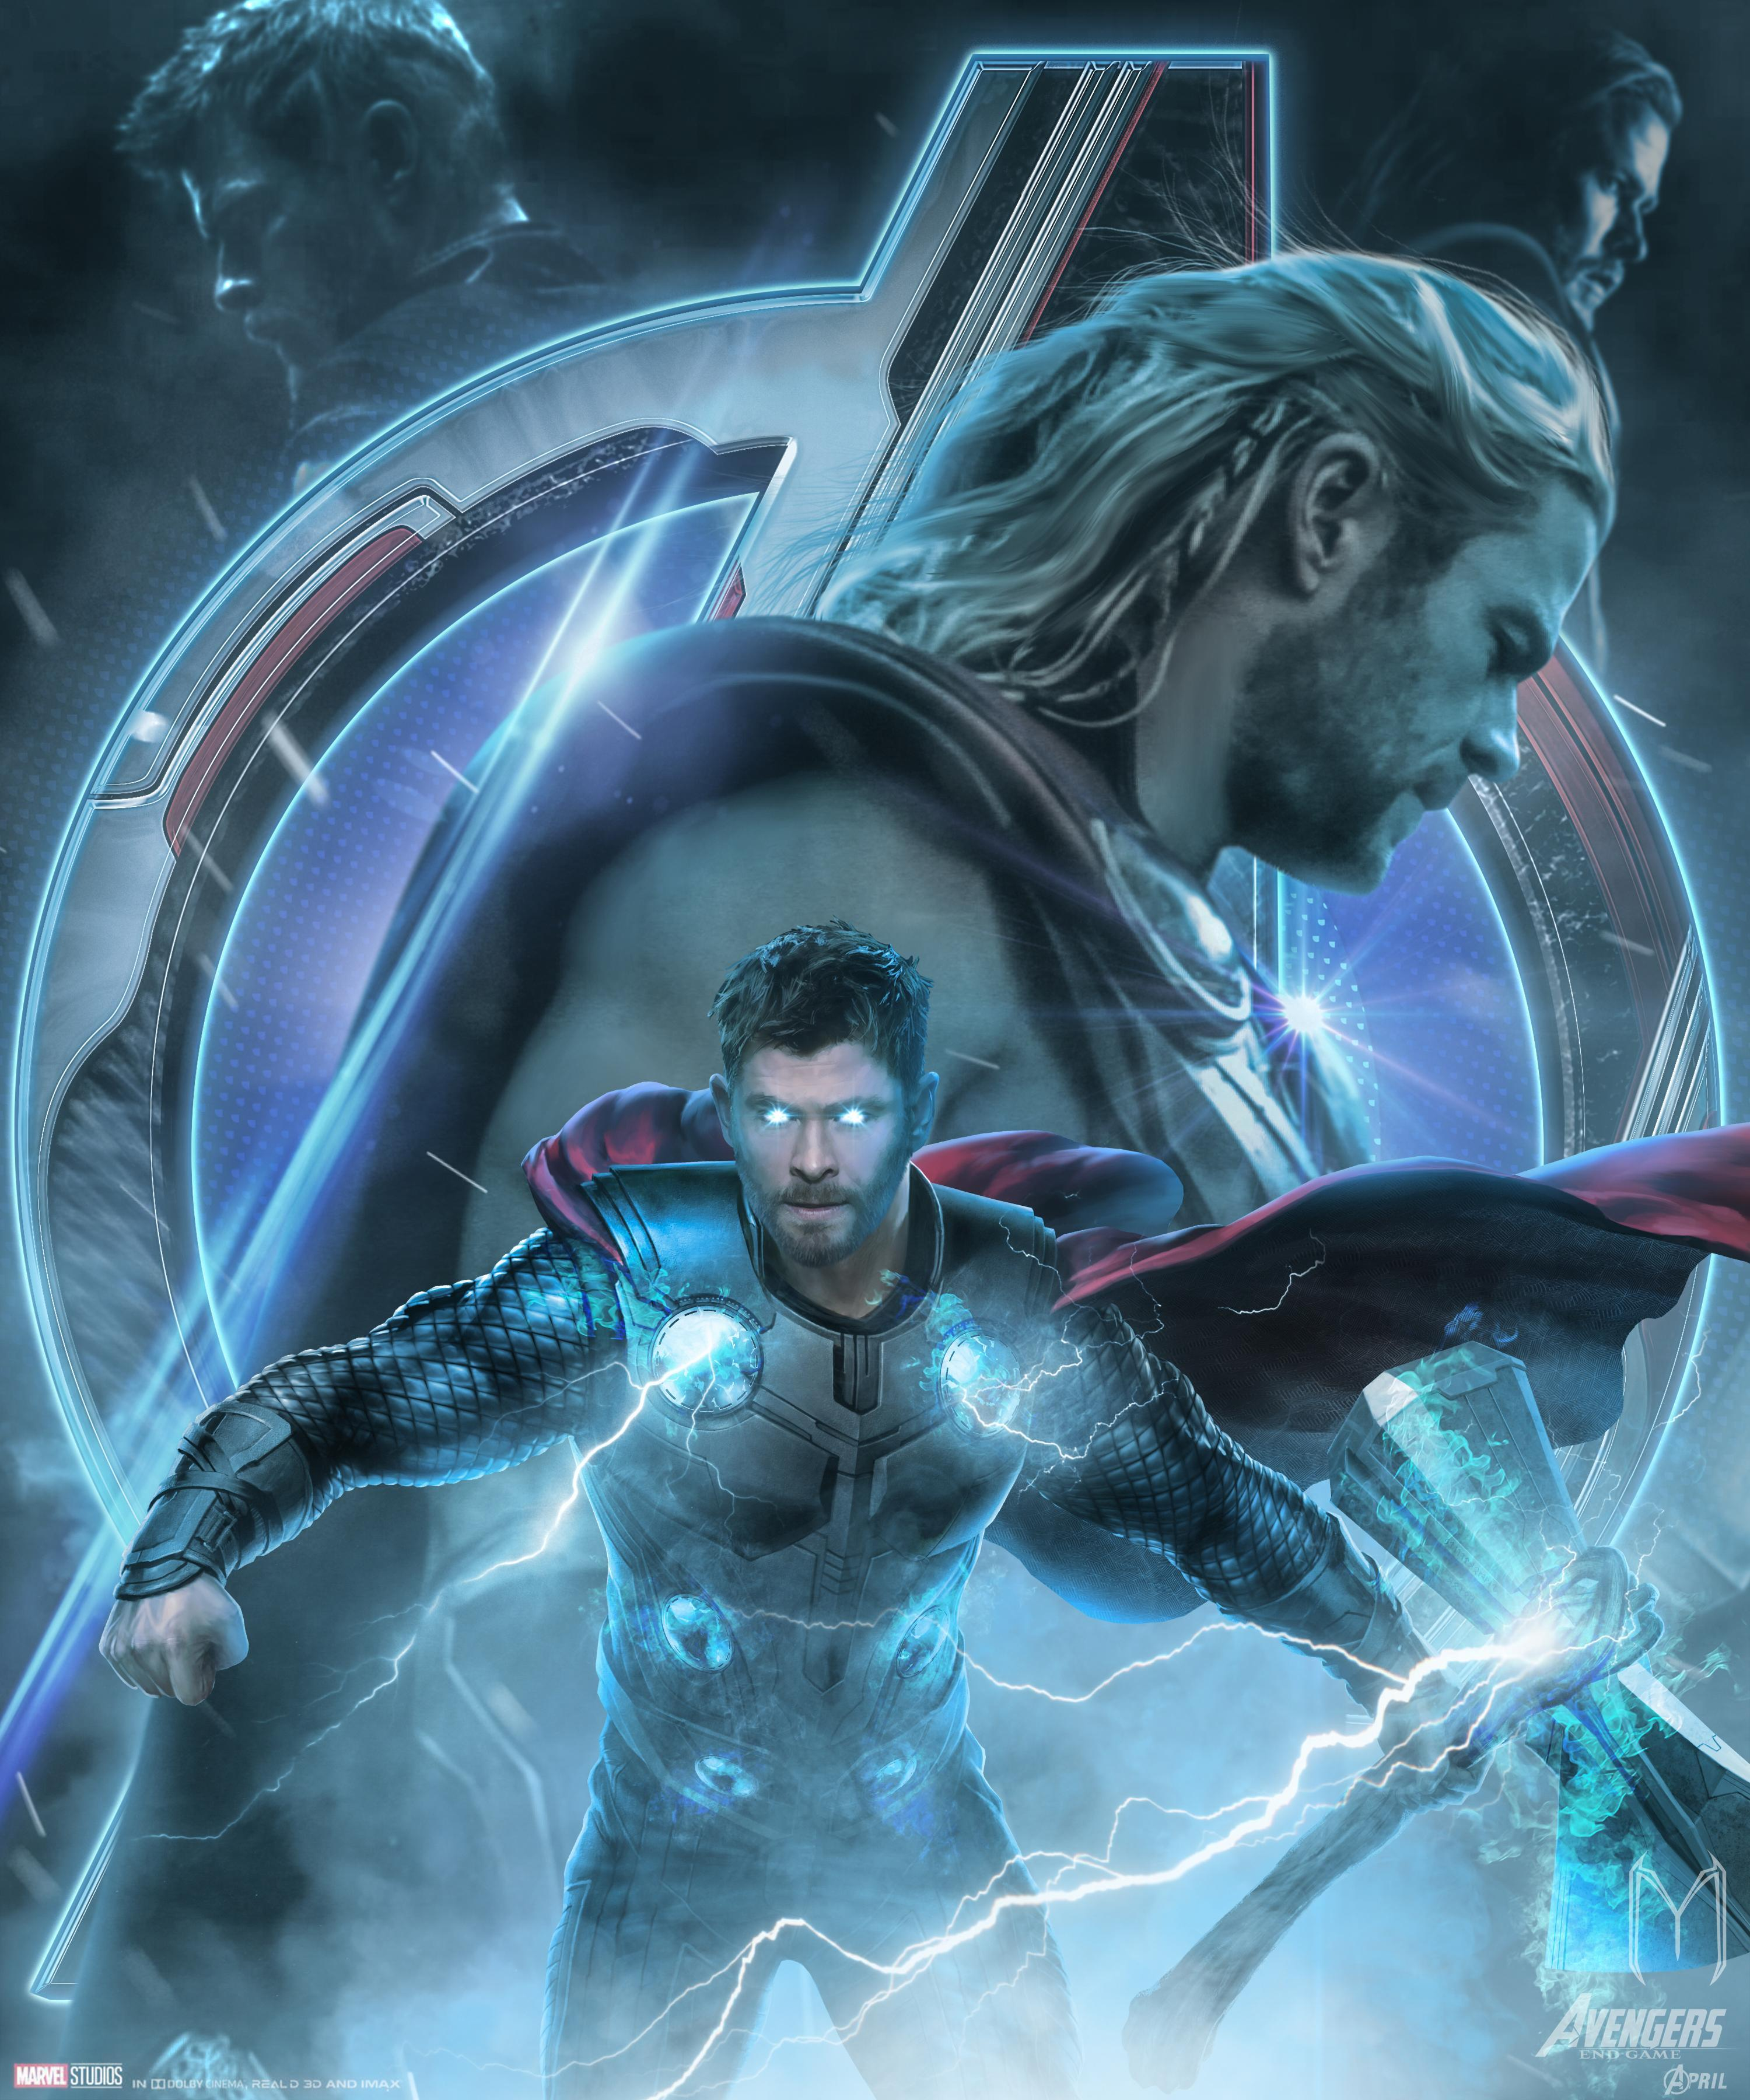 Download Avengers Endgame Thor Hd Wallpaper Cikimmcom